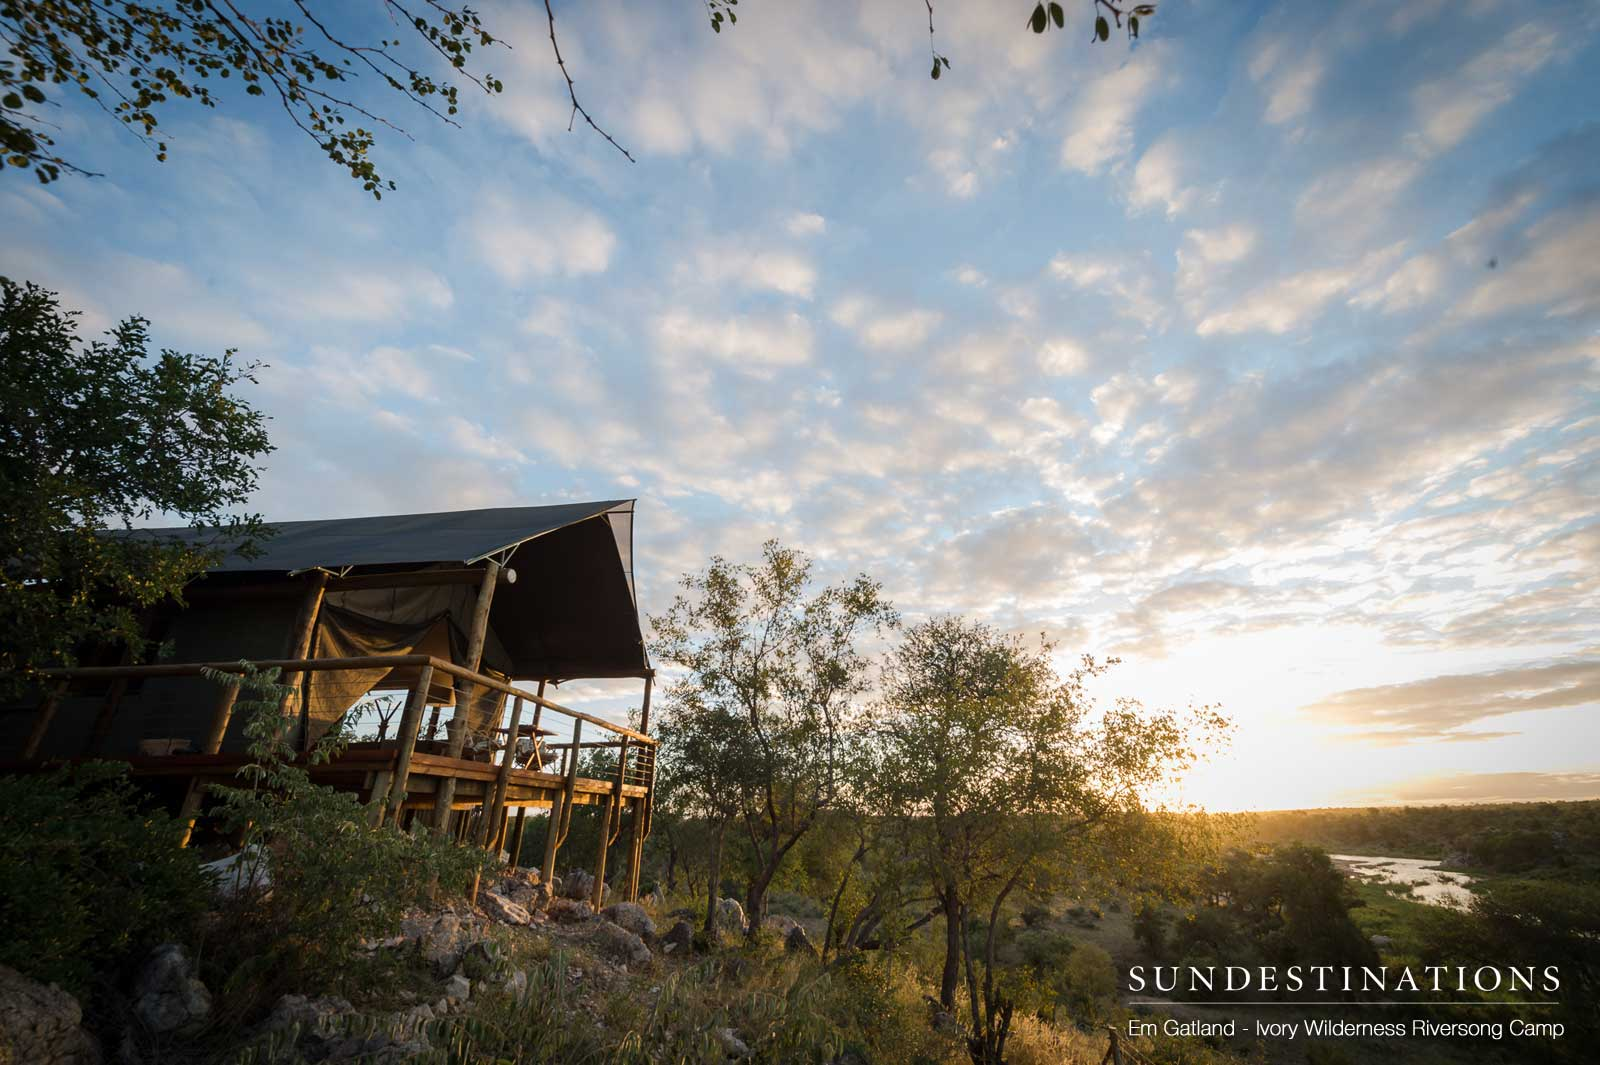 Lodge Luxury with River Views at Ivory Wilderness Riversong Camp